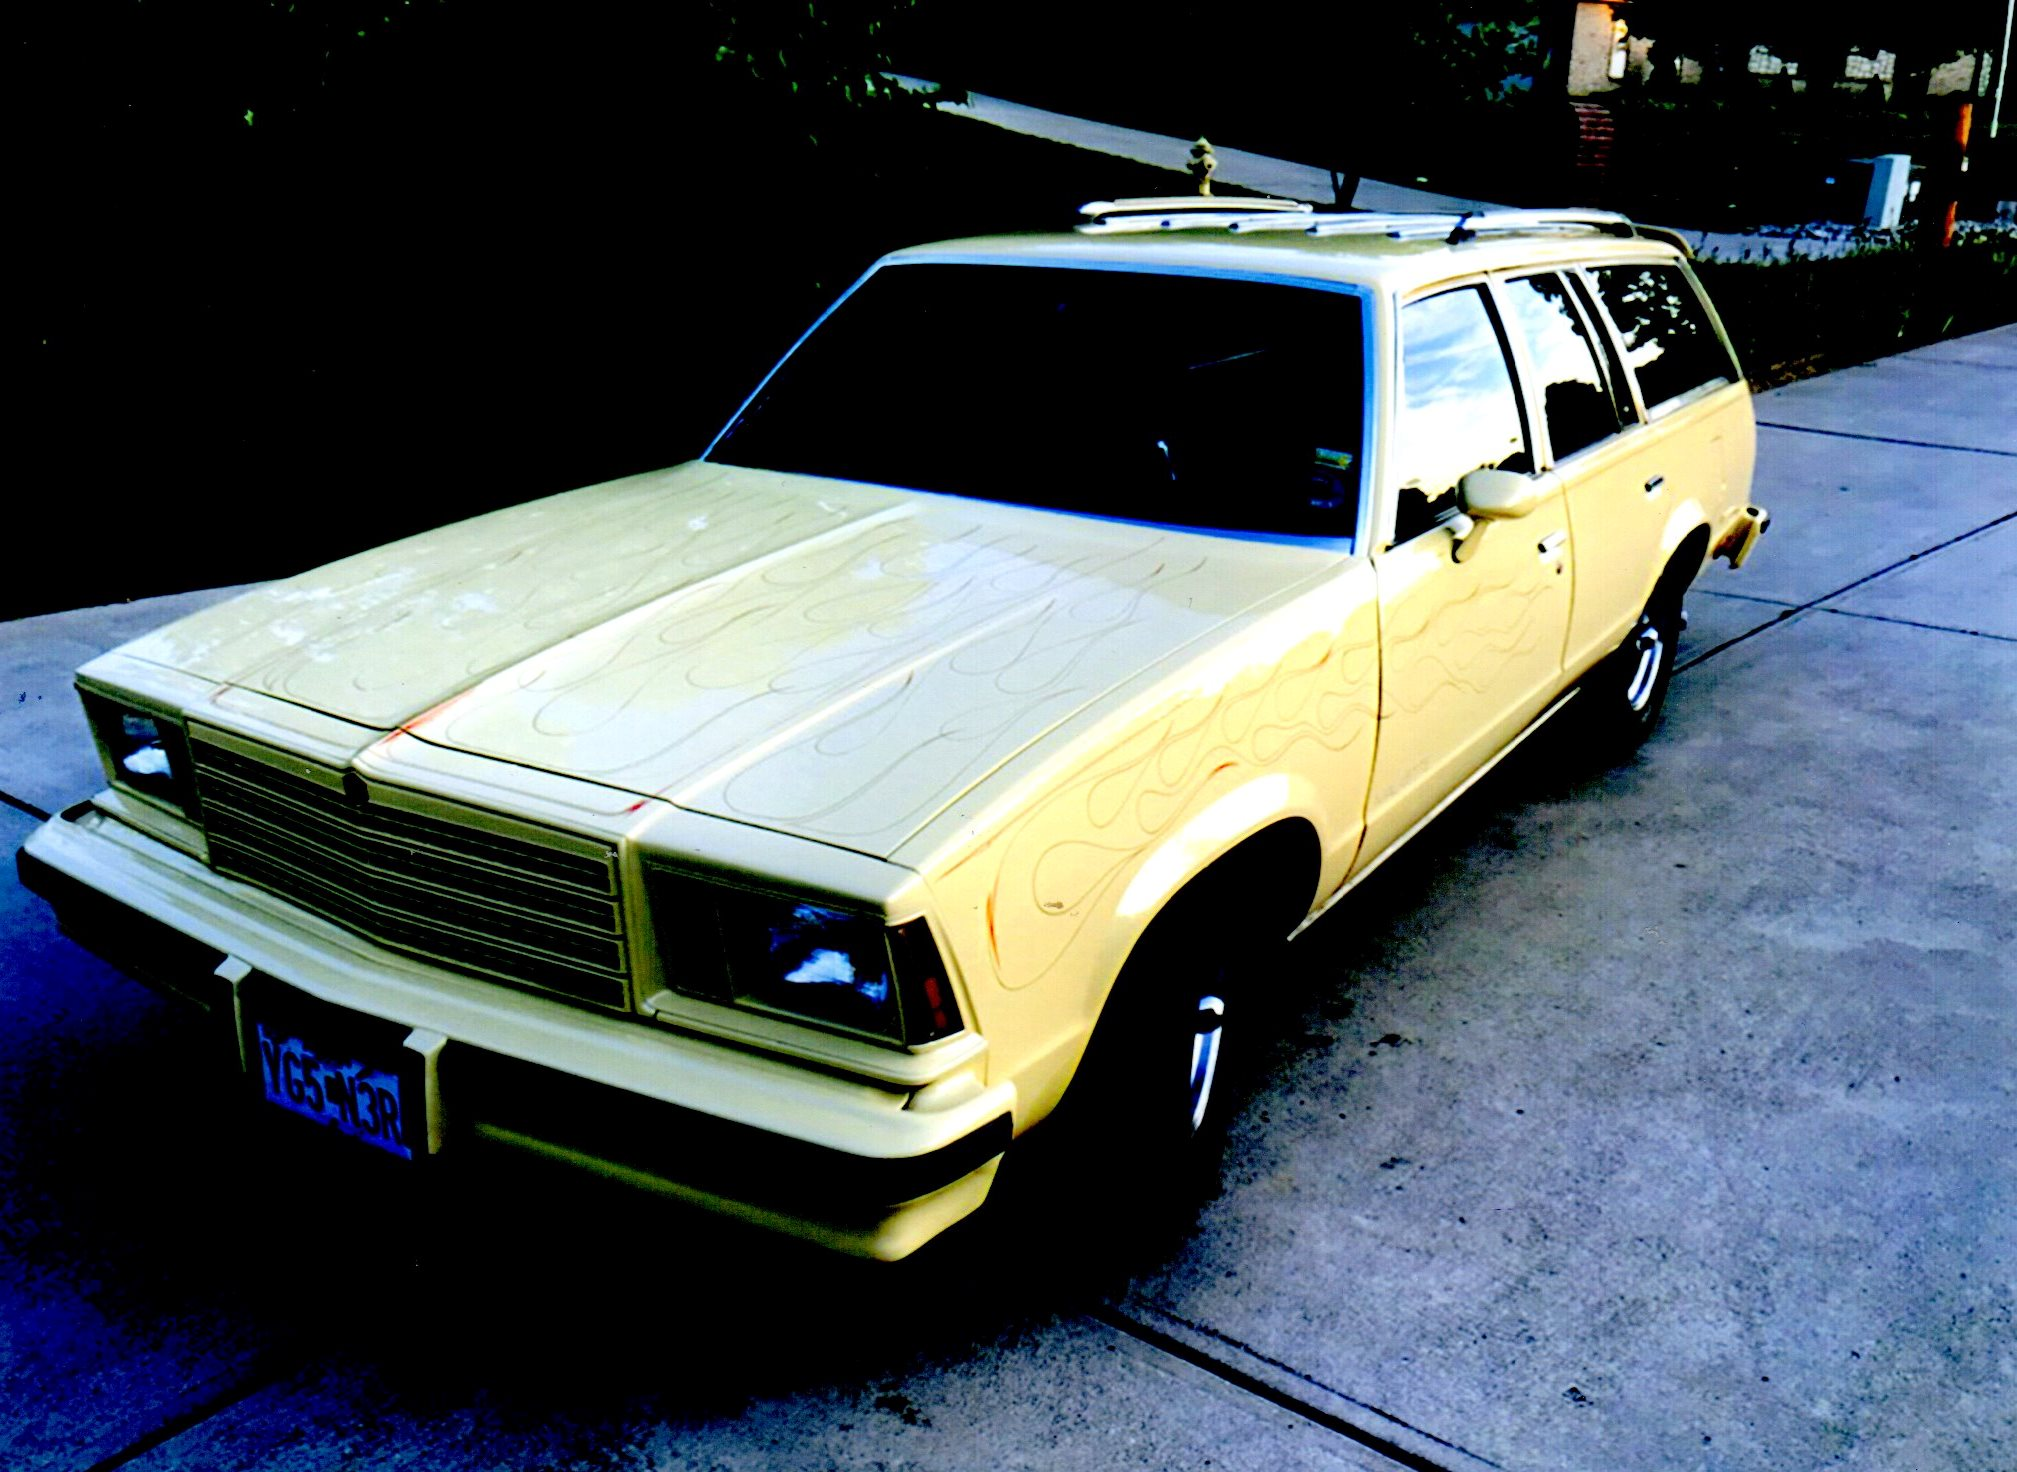 1979 Chevrolet Malibu Station Wagon